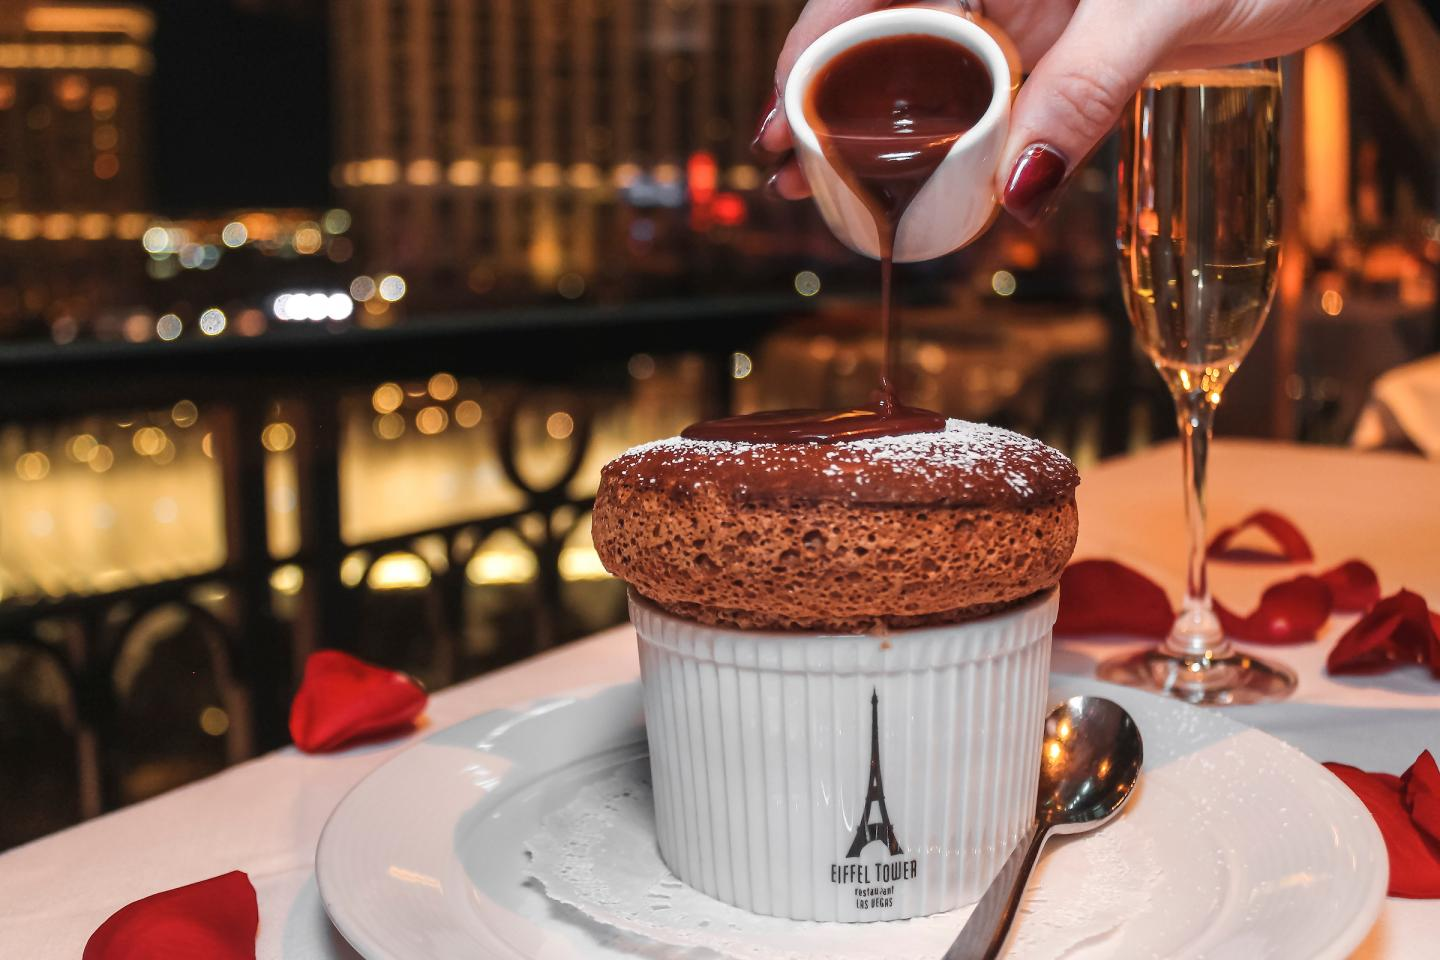 Chocolate Souffle at Eiffel Tower